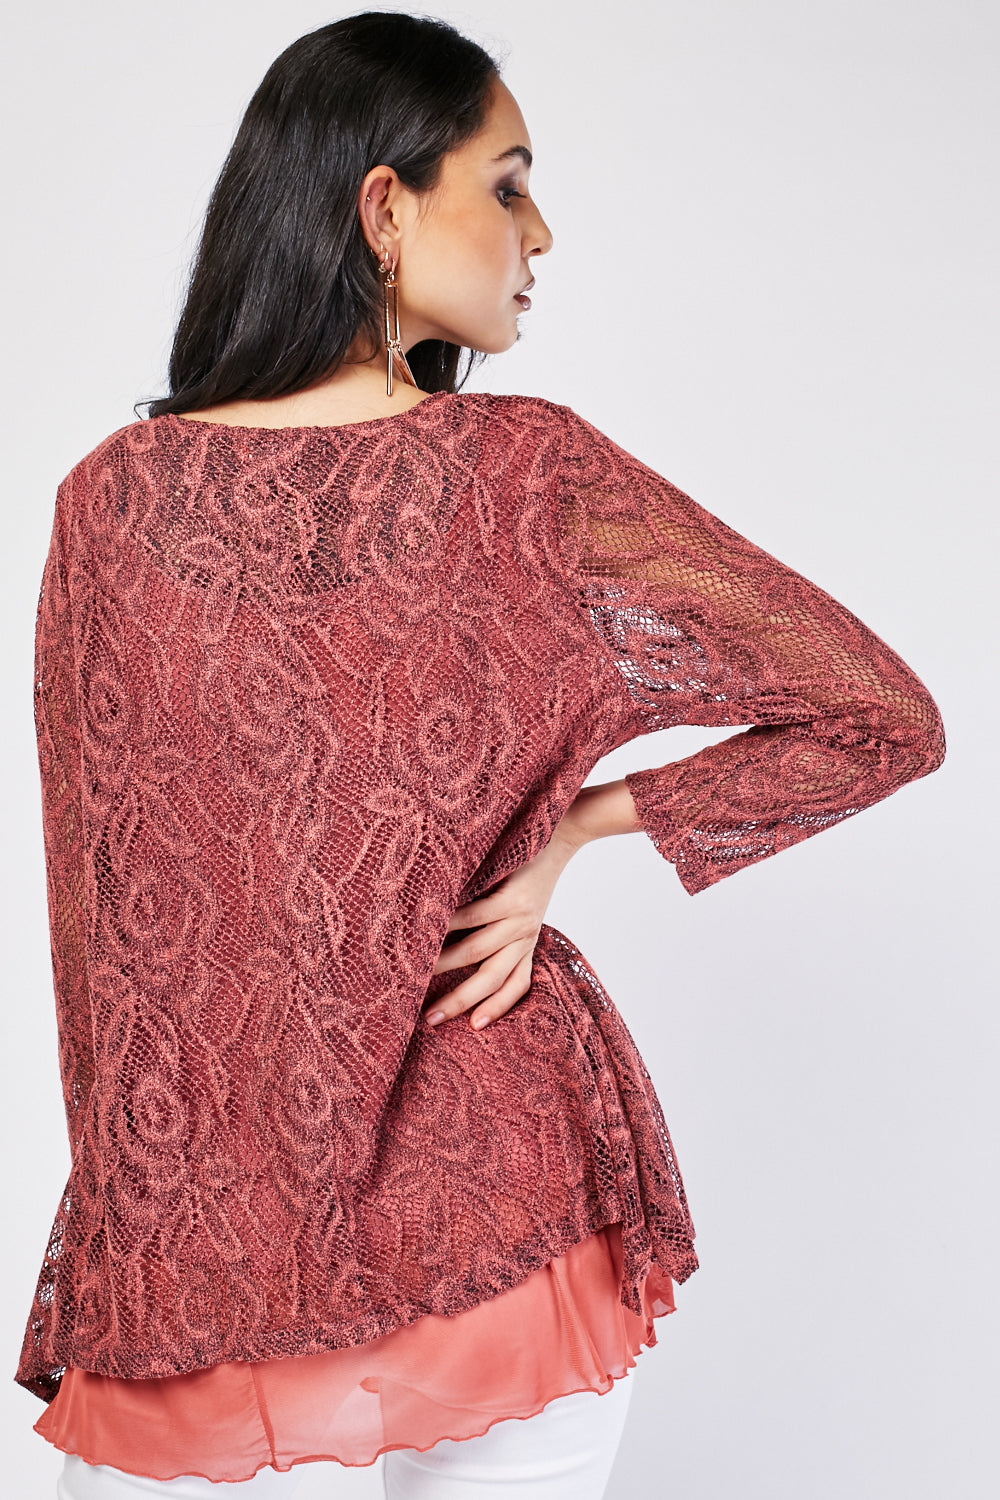 Kennedi Long Sleeve Lace Overlay Blouse Top-Woven Trends